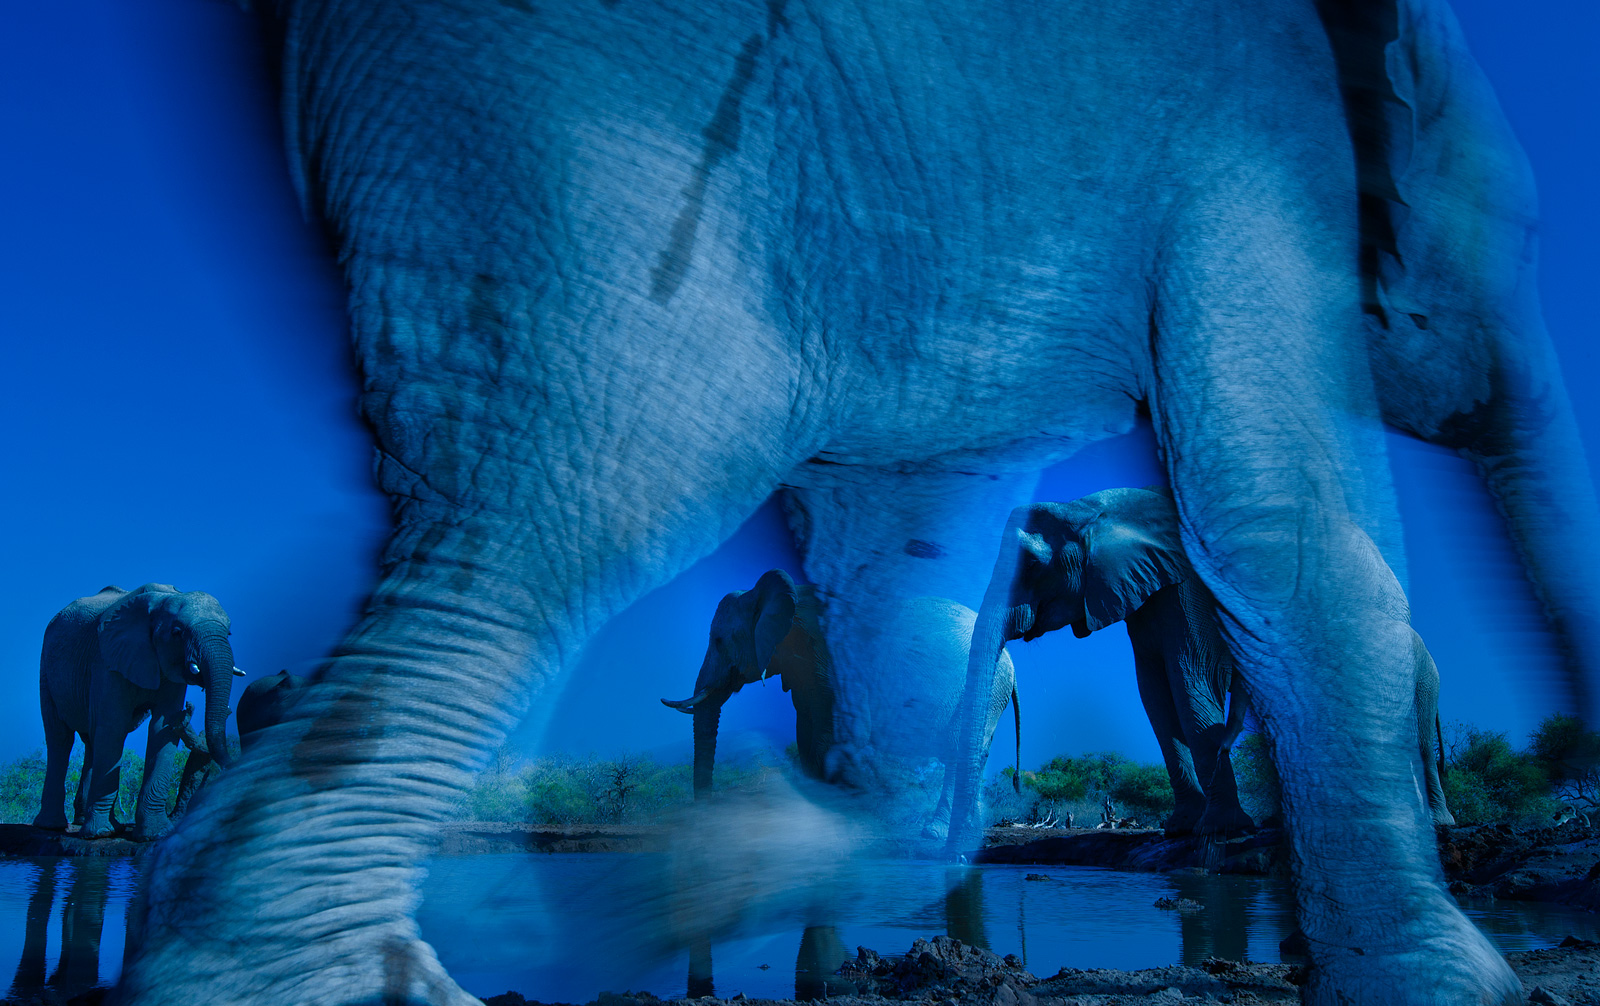 """The image that won Greg the coveted 'Wildlife Photographer of the Year' award in 2013 © <a href=""""https://www.gregdutoit.com/"""" target=""""_blank"""">Greg du Toit</a>"""